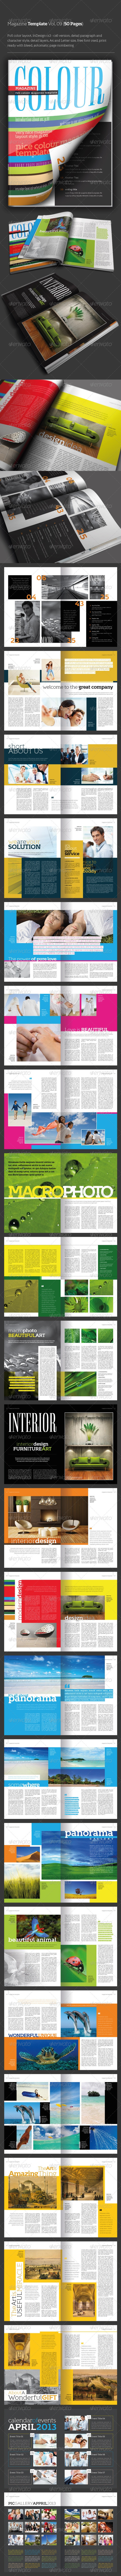 18 best Free Indesign Templates images on Pinterest | Adobe indesign ...